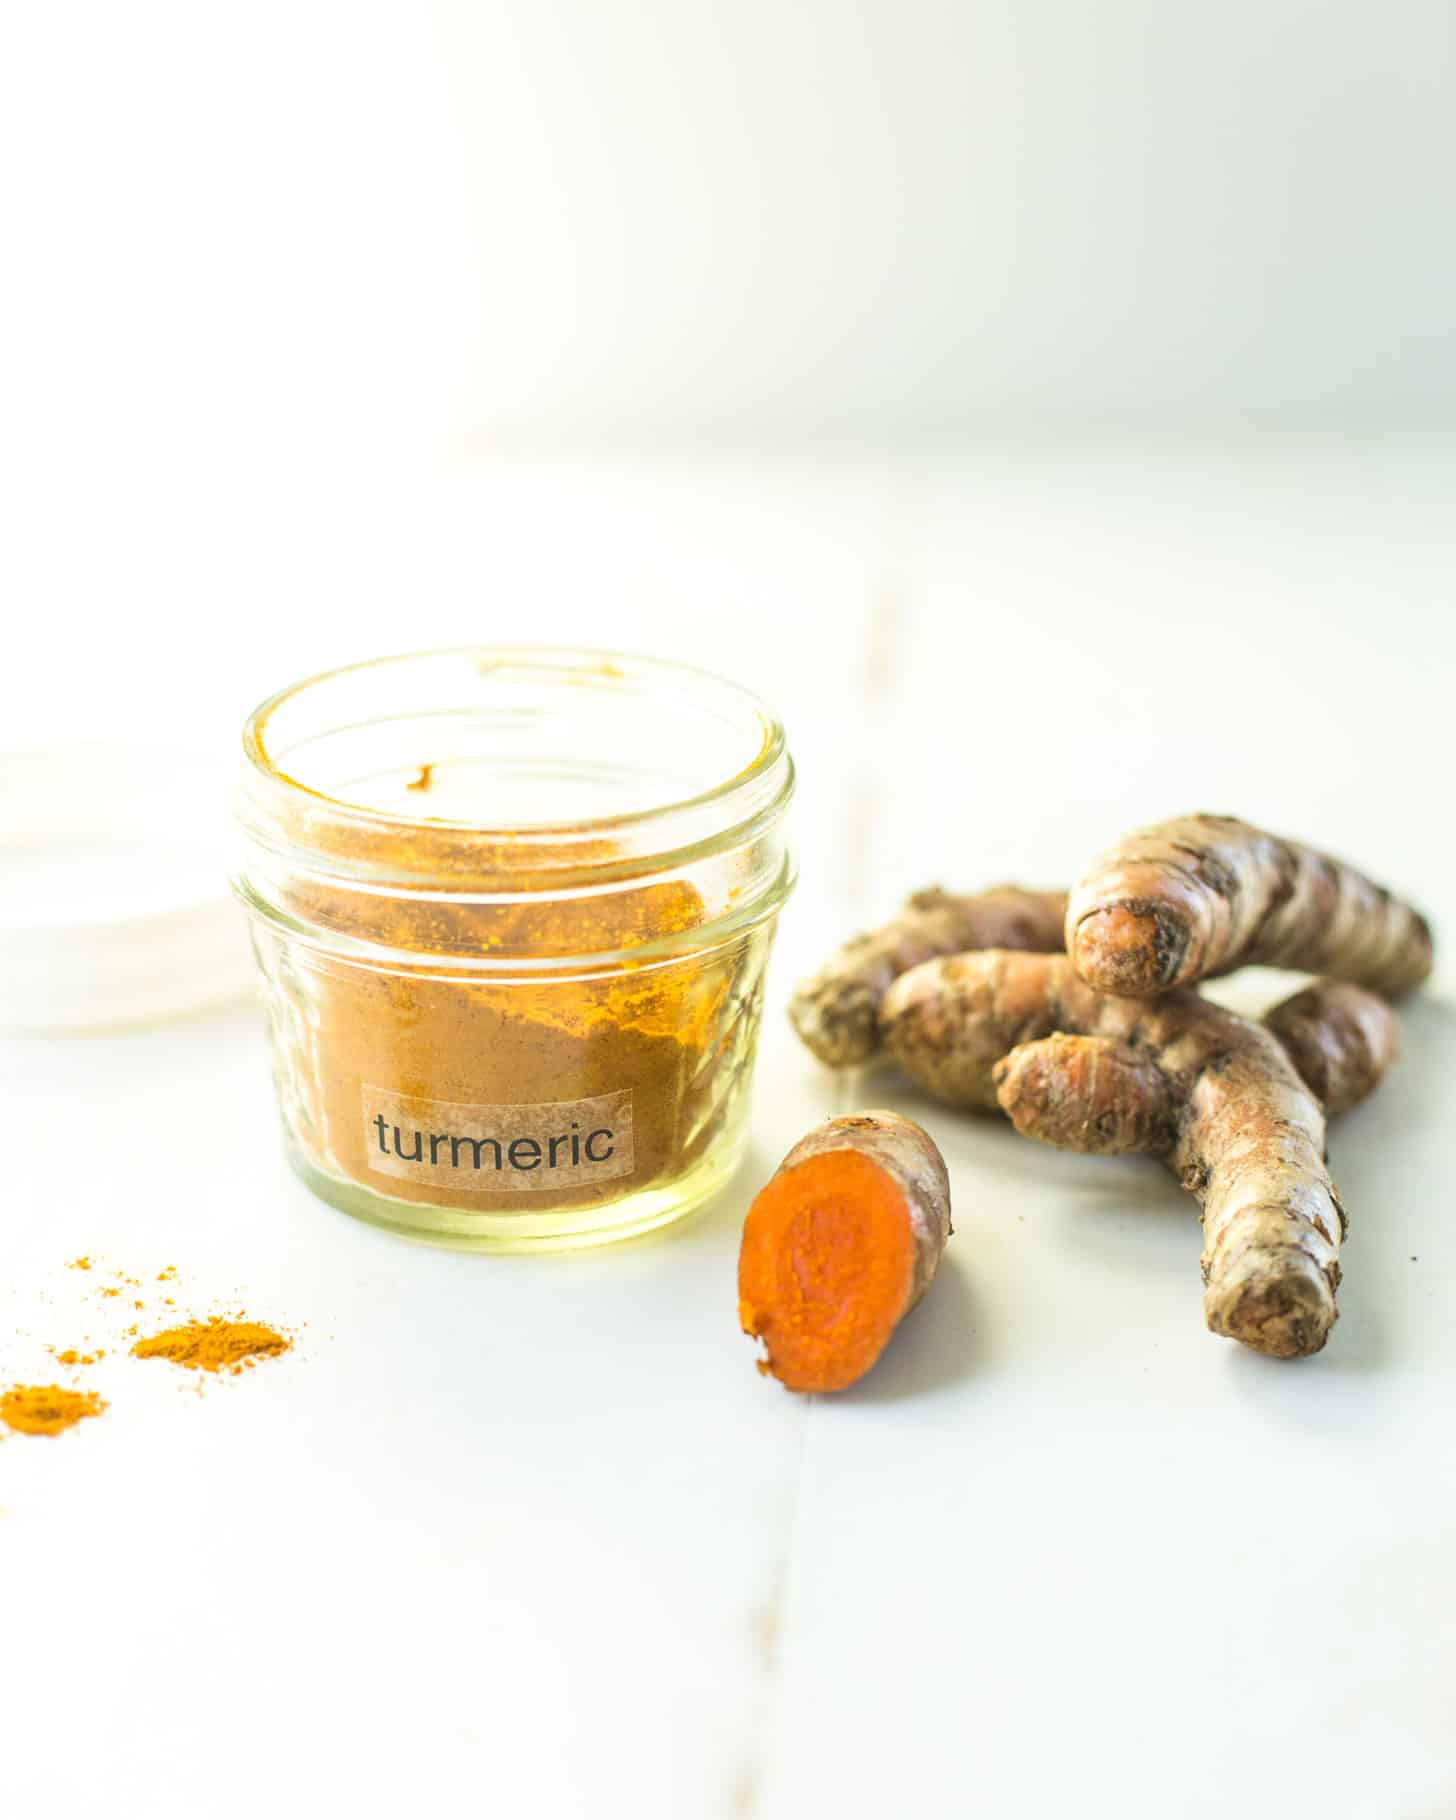 Turmeric on a white table